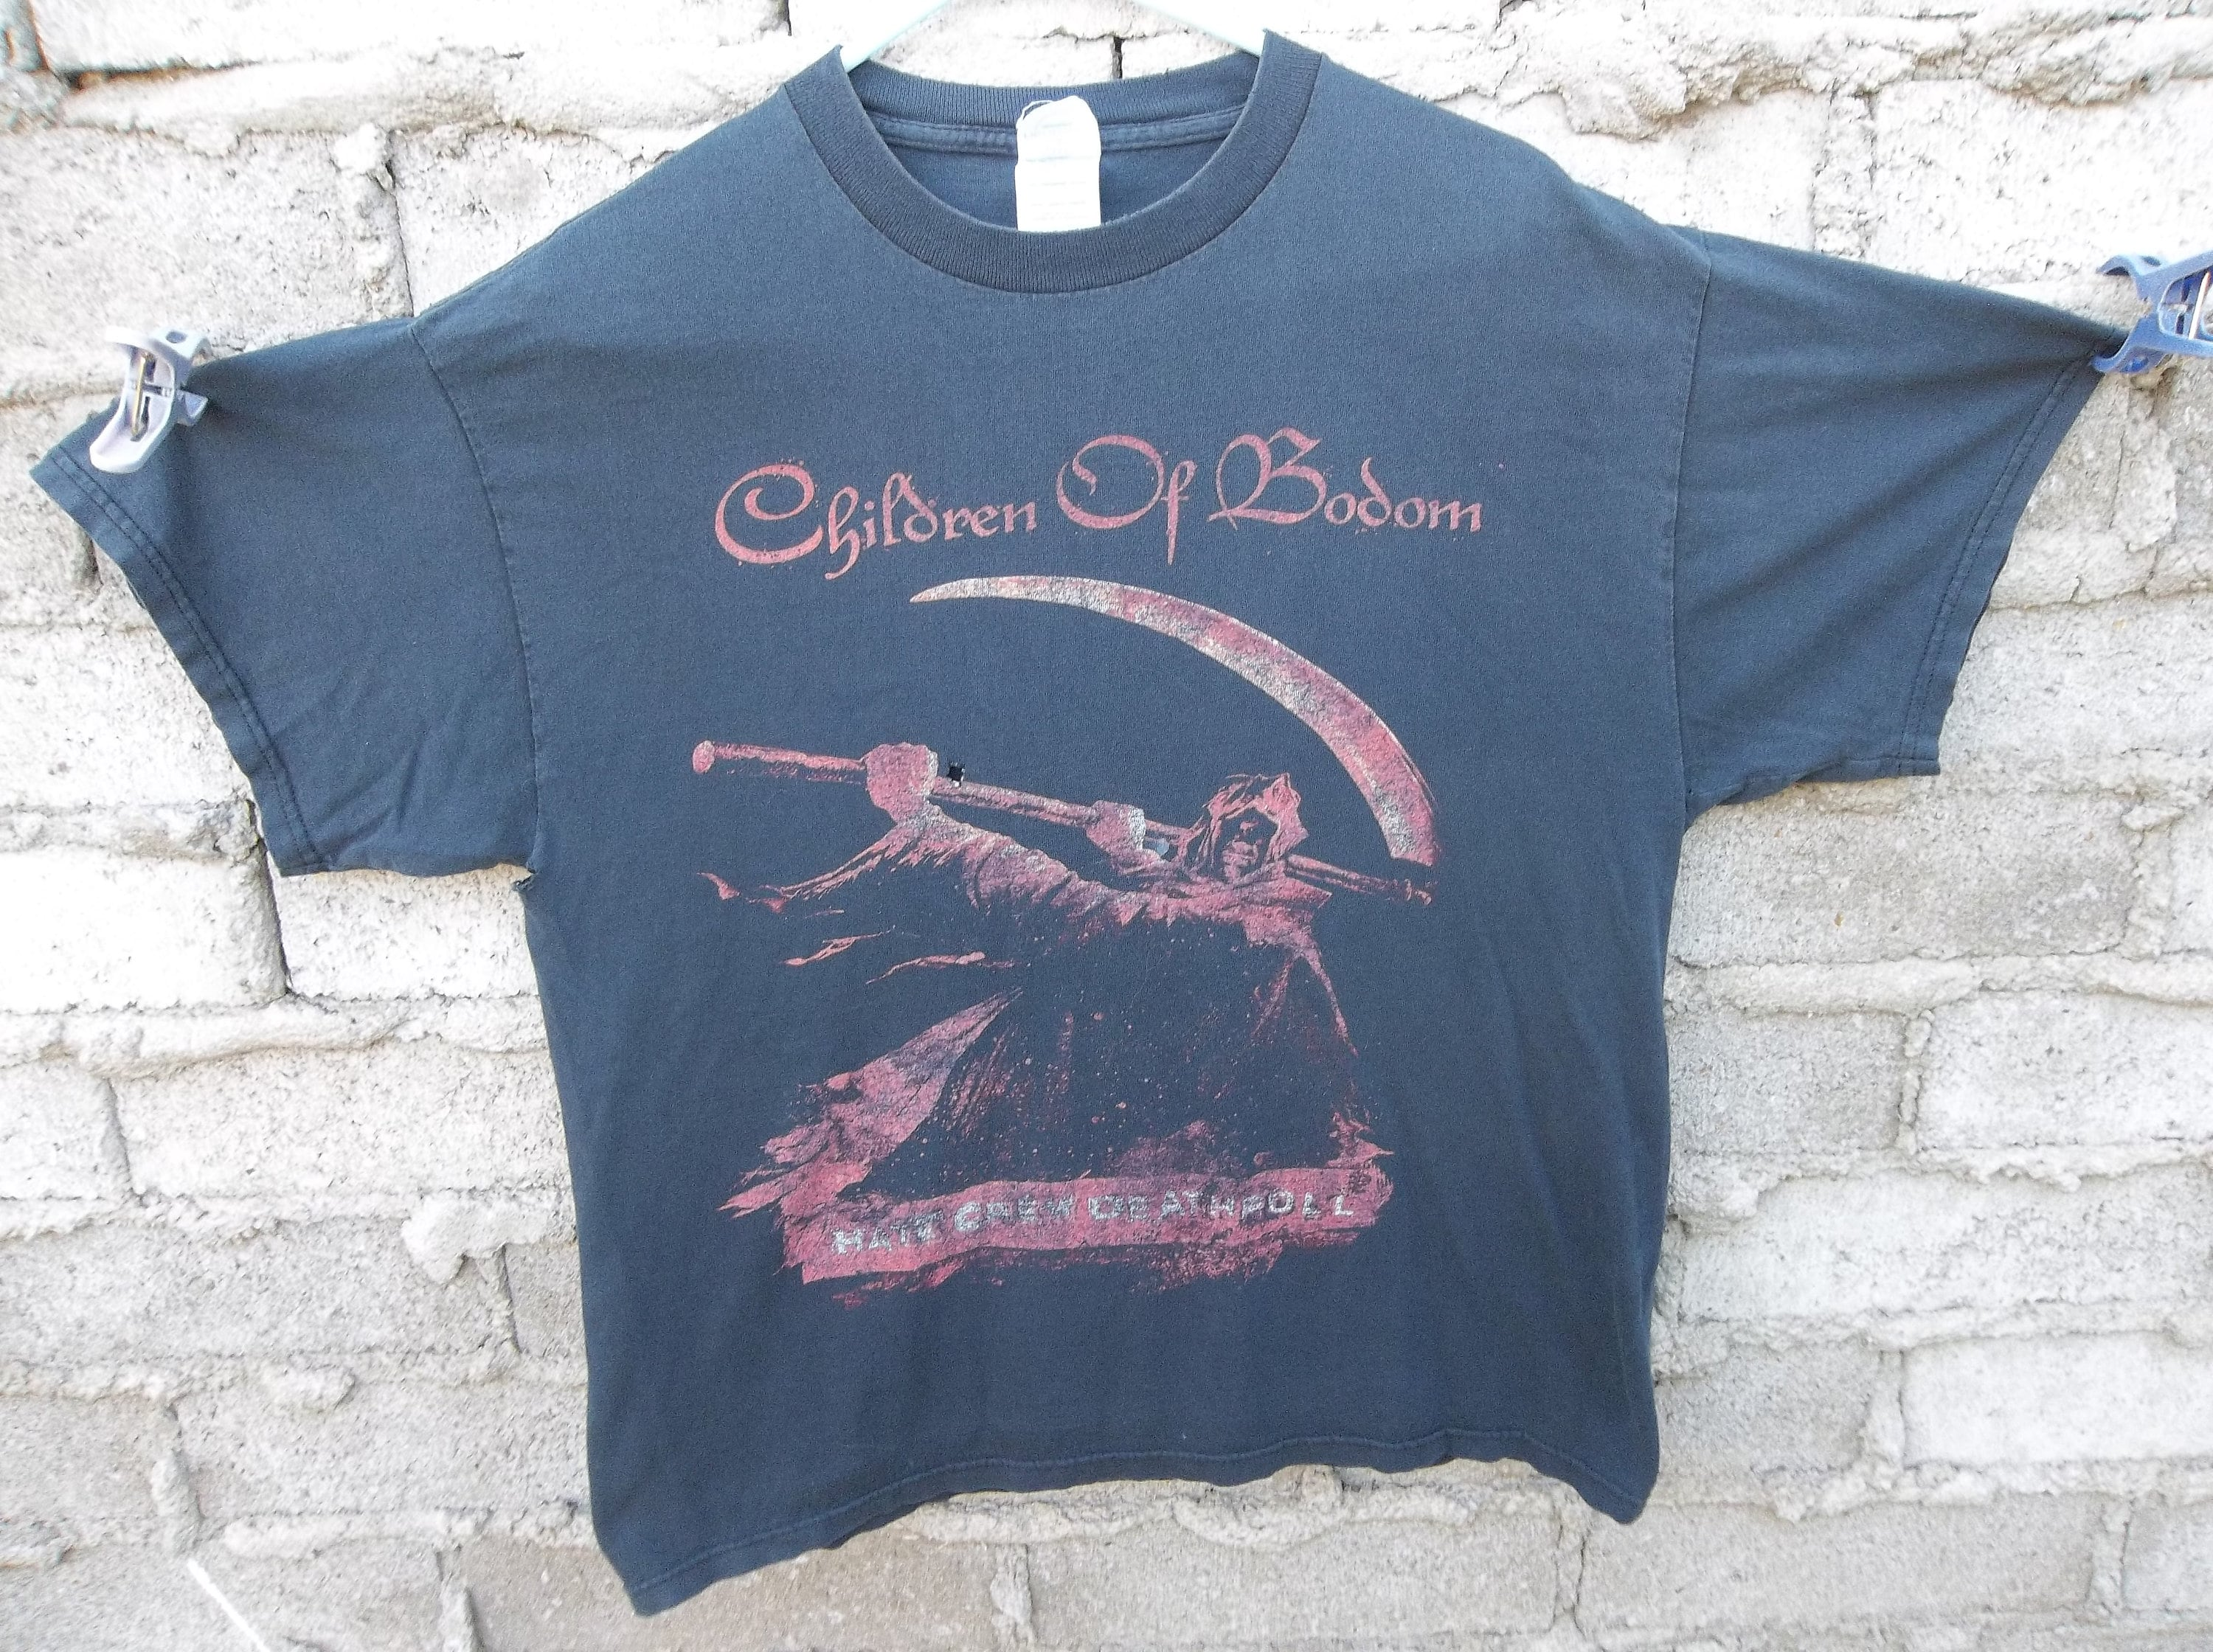 Bodum Tee Concert T Shirt Sodom Of Bodum Faded Black Destroyed Grunge Nu Metal Death Metal Large Distressed Faded American Tour